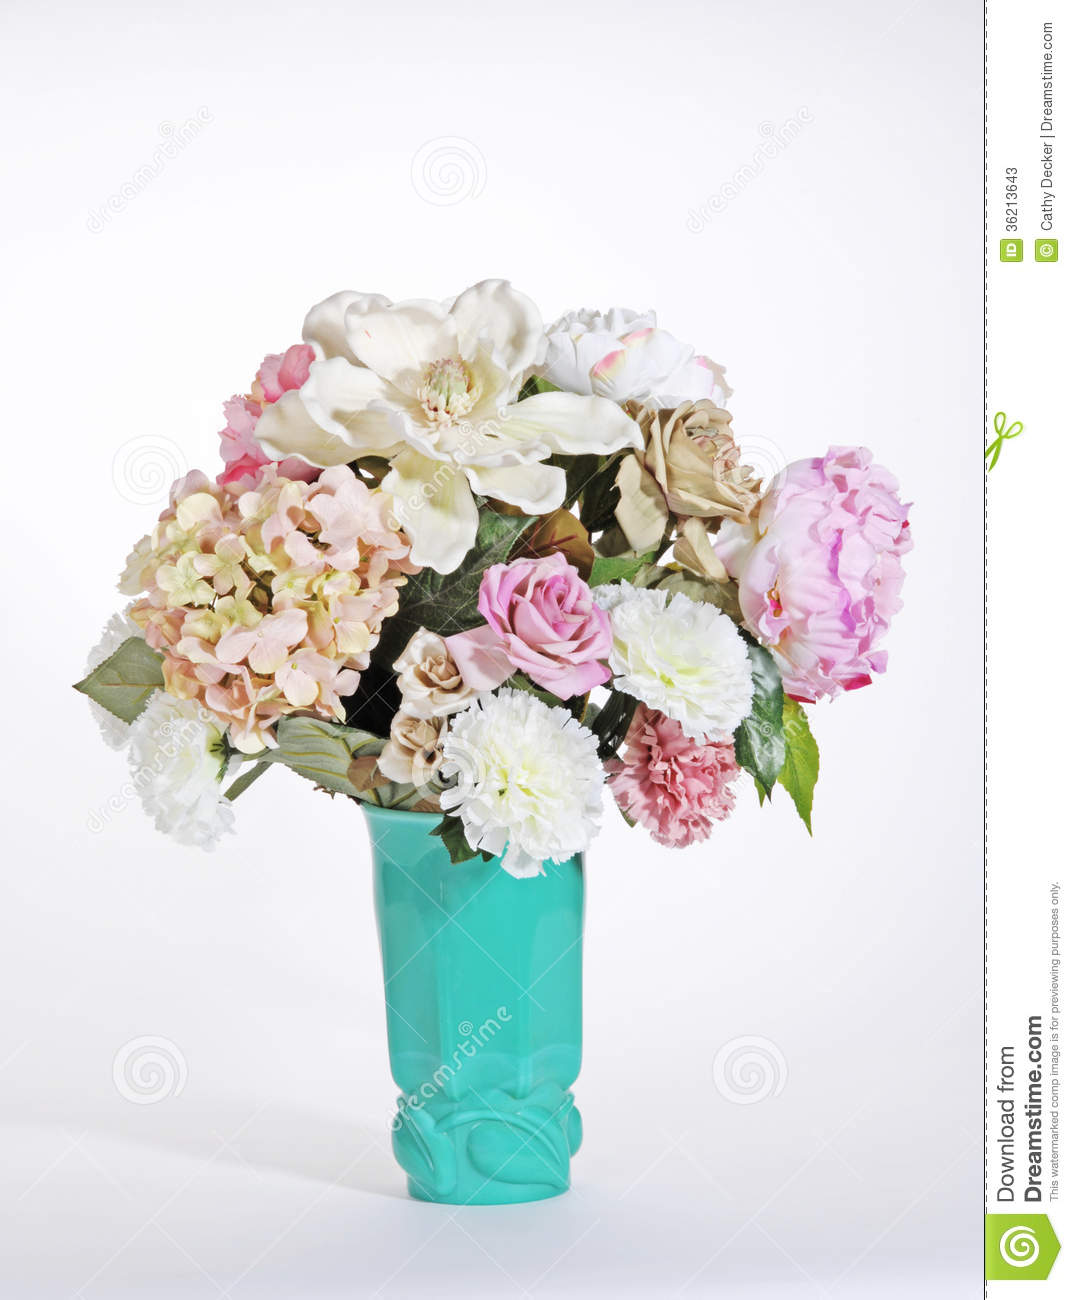 Pink and white flowers in a turquoise green deco vase stock image pink and white flowers in a turquoise green deco vase mightylinksfo